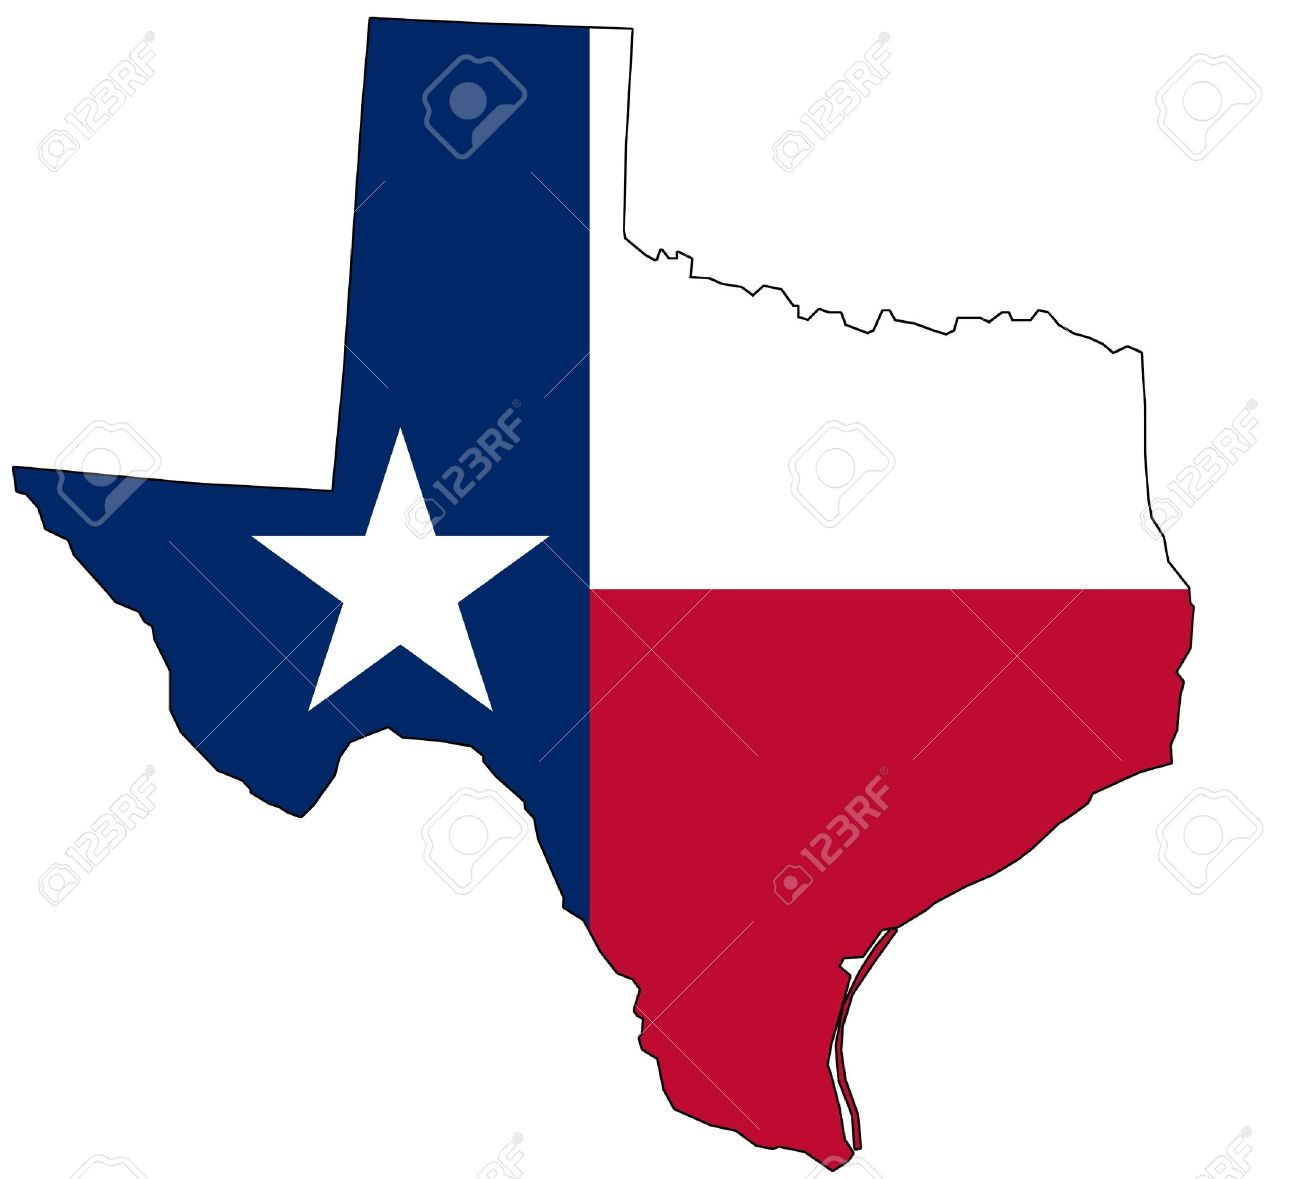 Map Of Texas In National Colors Stock Photo Picture And Royalty - Mapa de texas